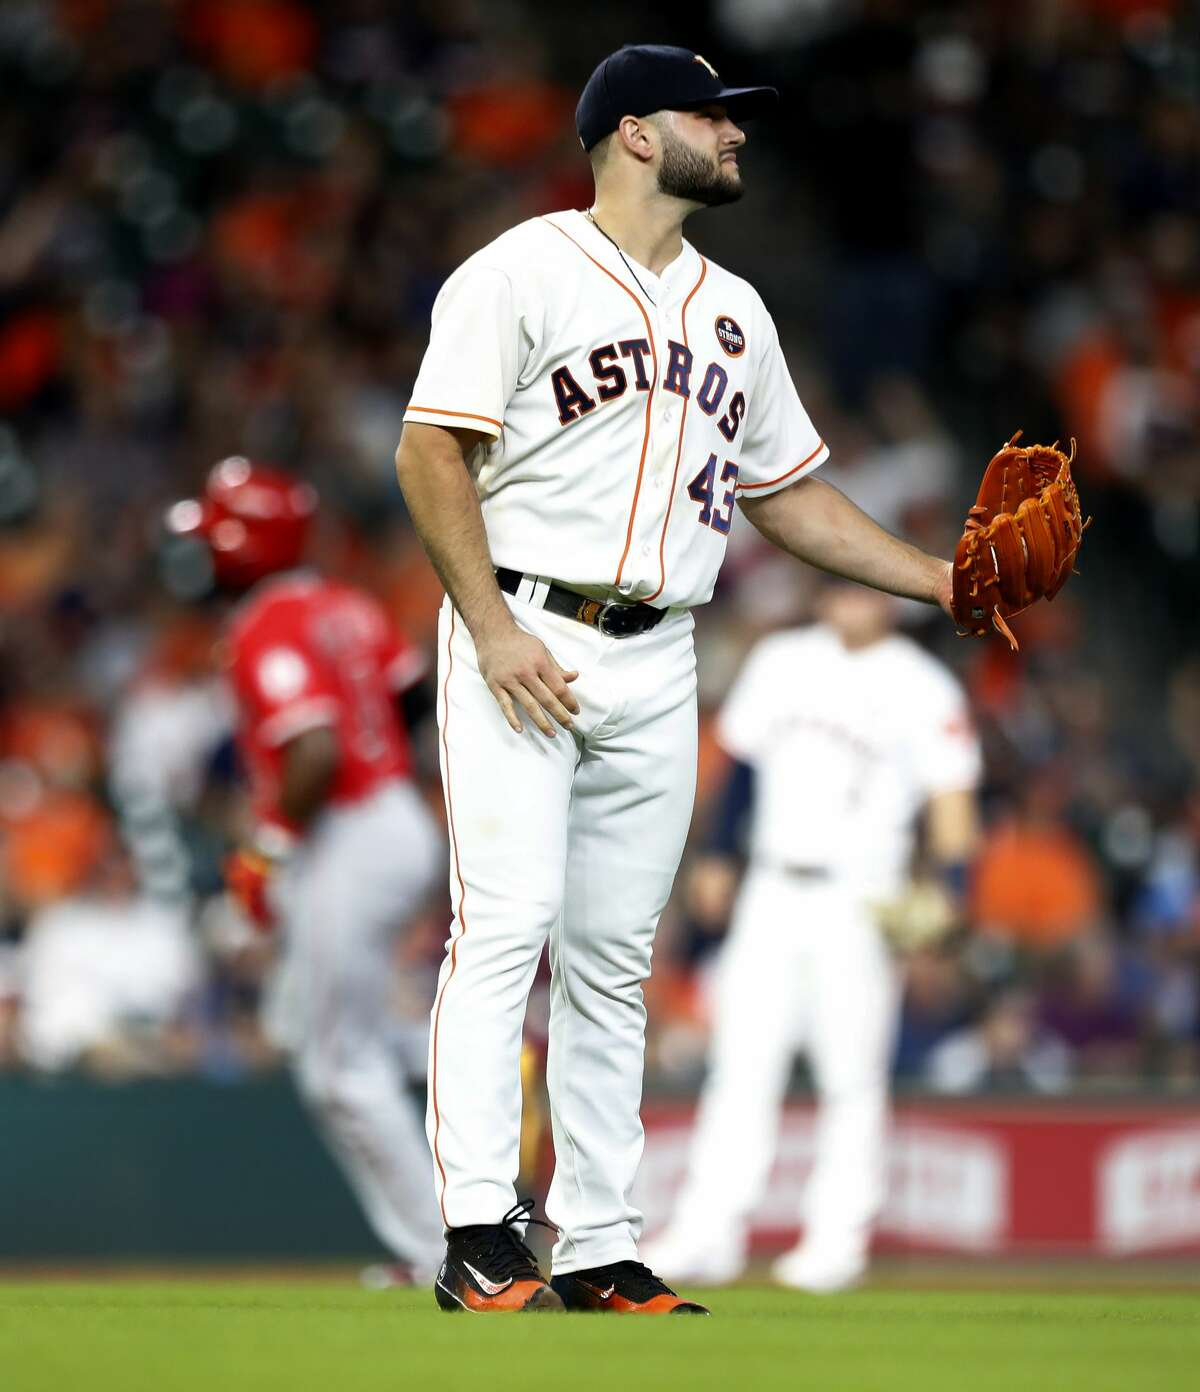 Houston Astros starting pitcher Lance McCullers Jr. (43) reacts after giving up a home run to Los Angeles Angels Brandon Phillips during he fourth inning of an MLB baseball game at Minute Maid Park, Sunday, Sept. 24, 2017, in Houston. ( Karen Warren / Houston Chronicle )